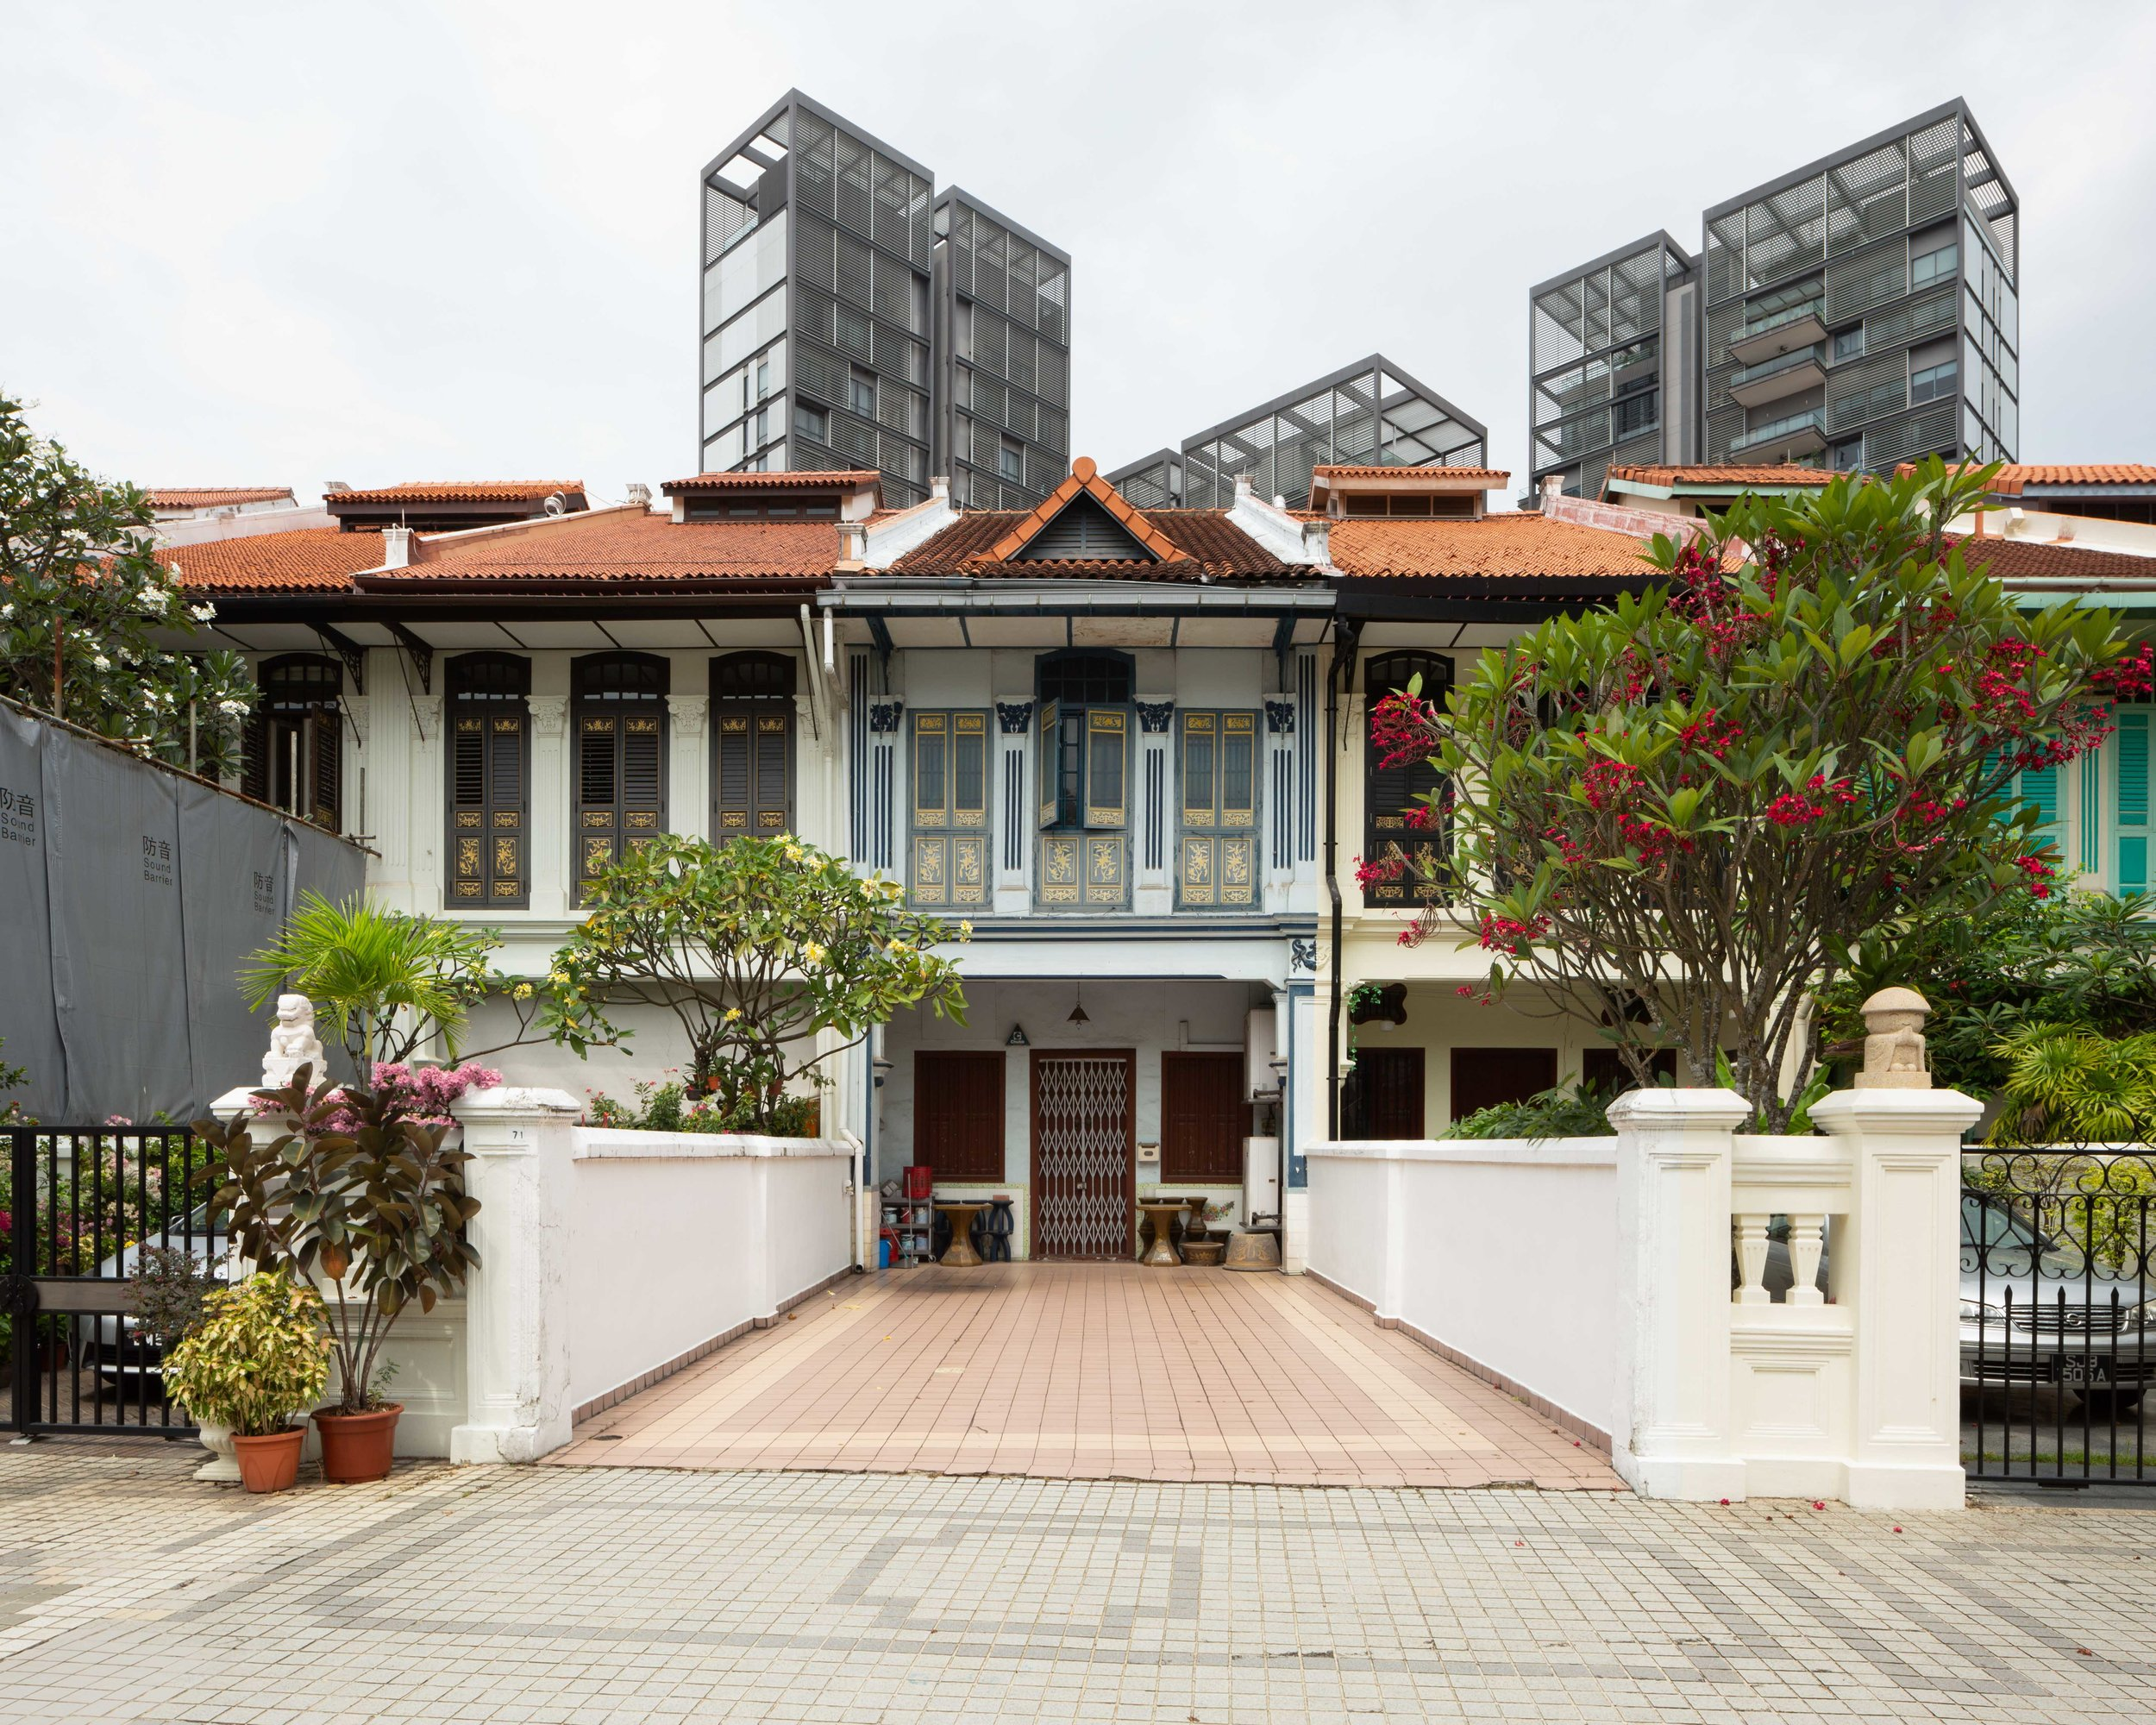 Highly westernized shophouse along Emerald Hill, designed by R.T. Rajoo and developed by Low Koon Yee in 1925